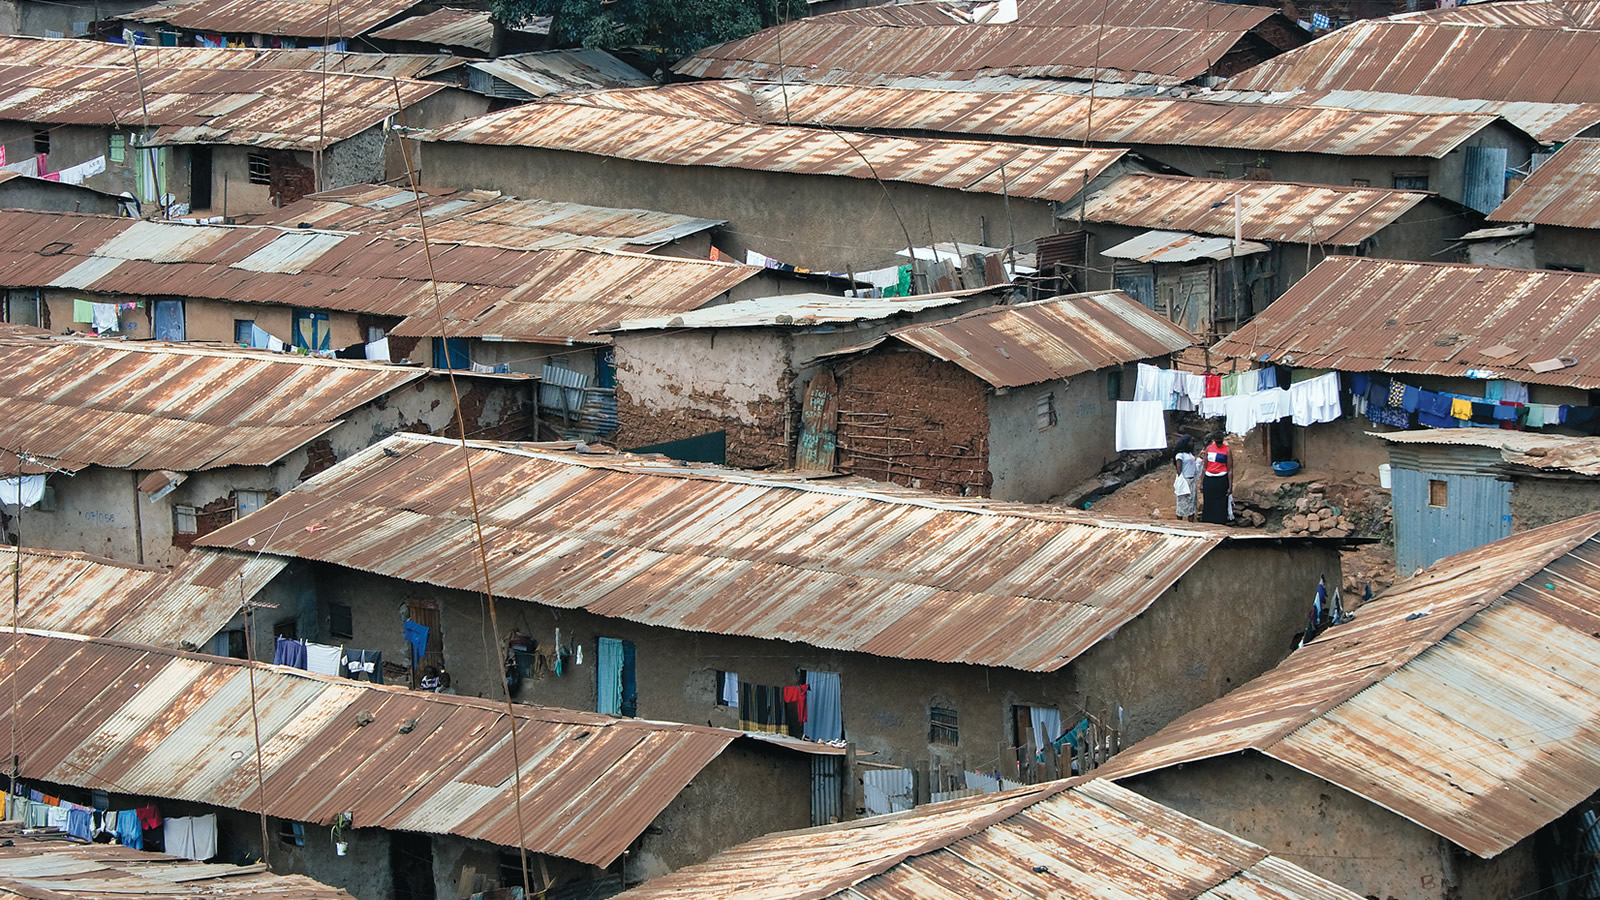 Shantytown with Tin Roofs and Laundry Outside